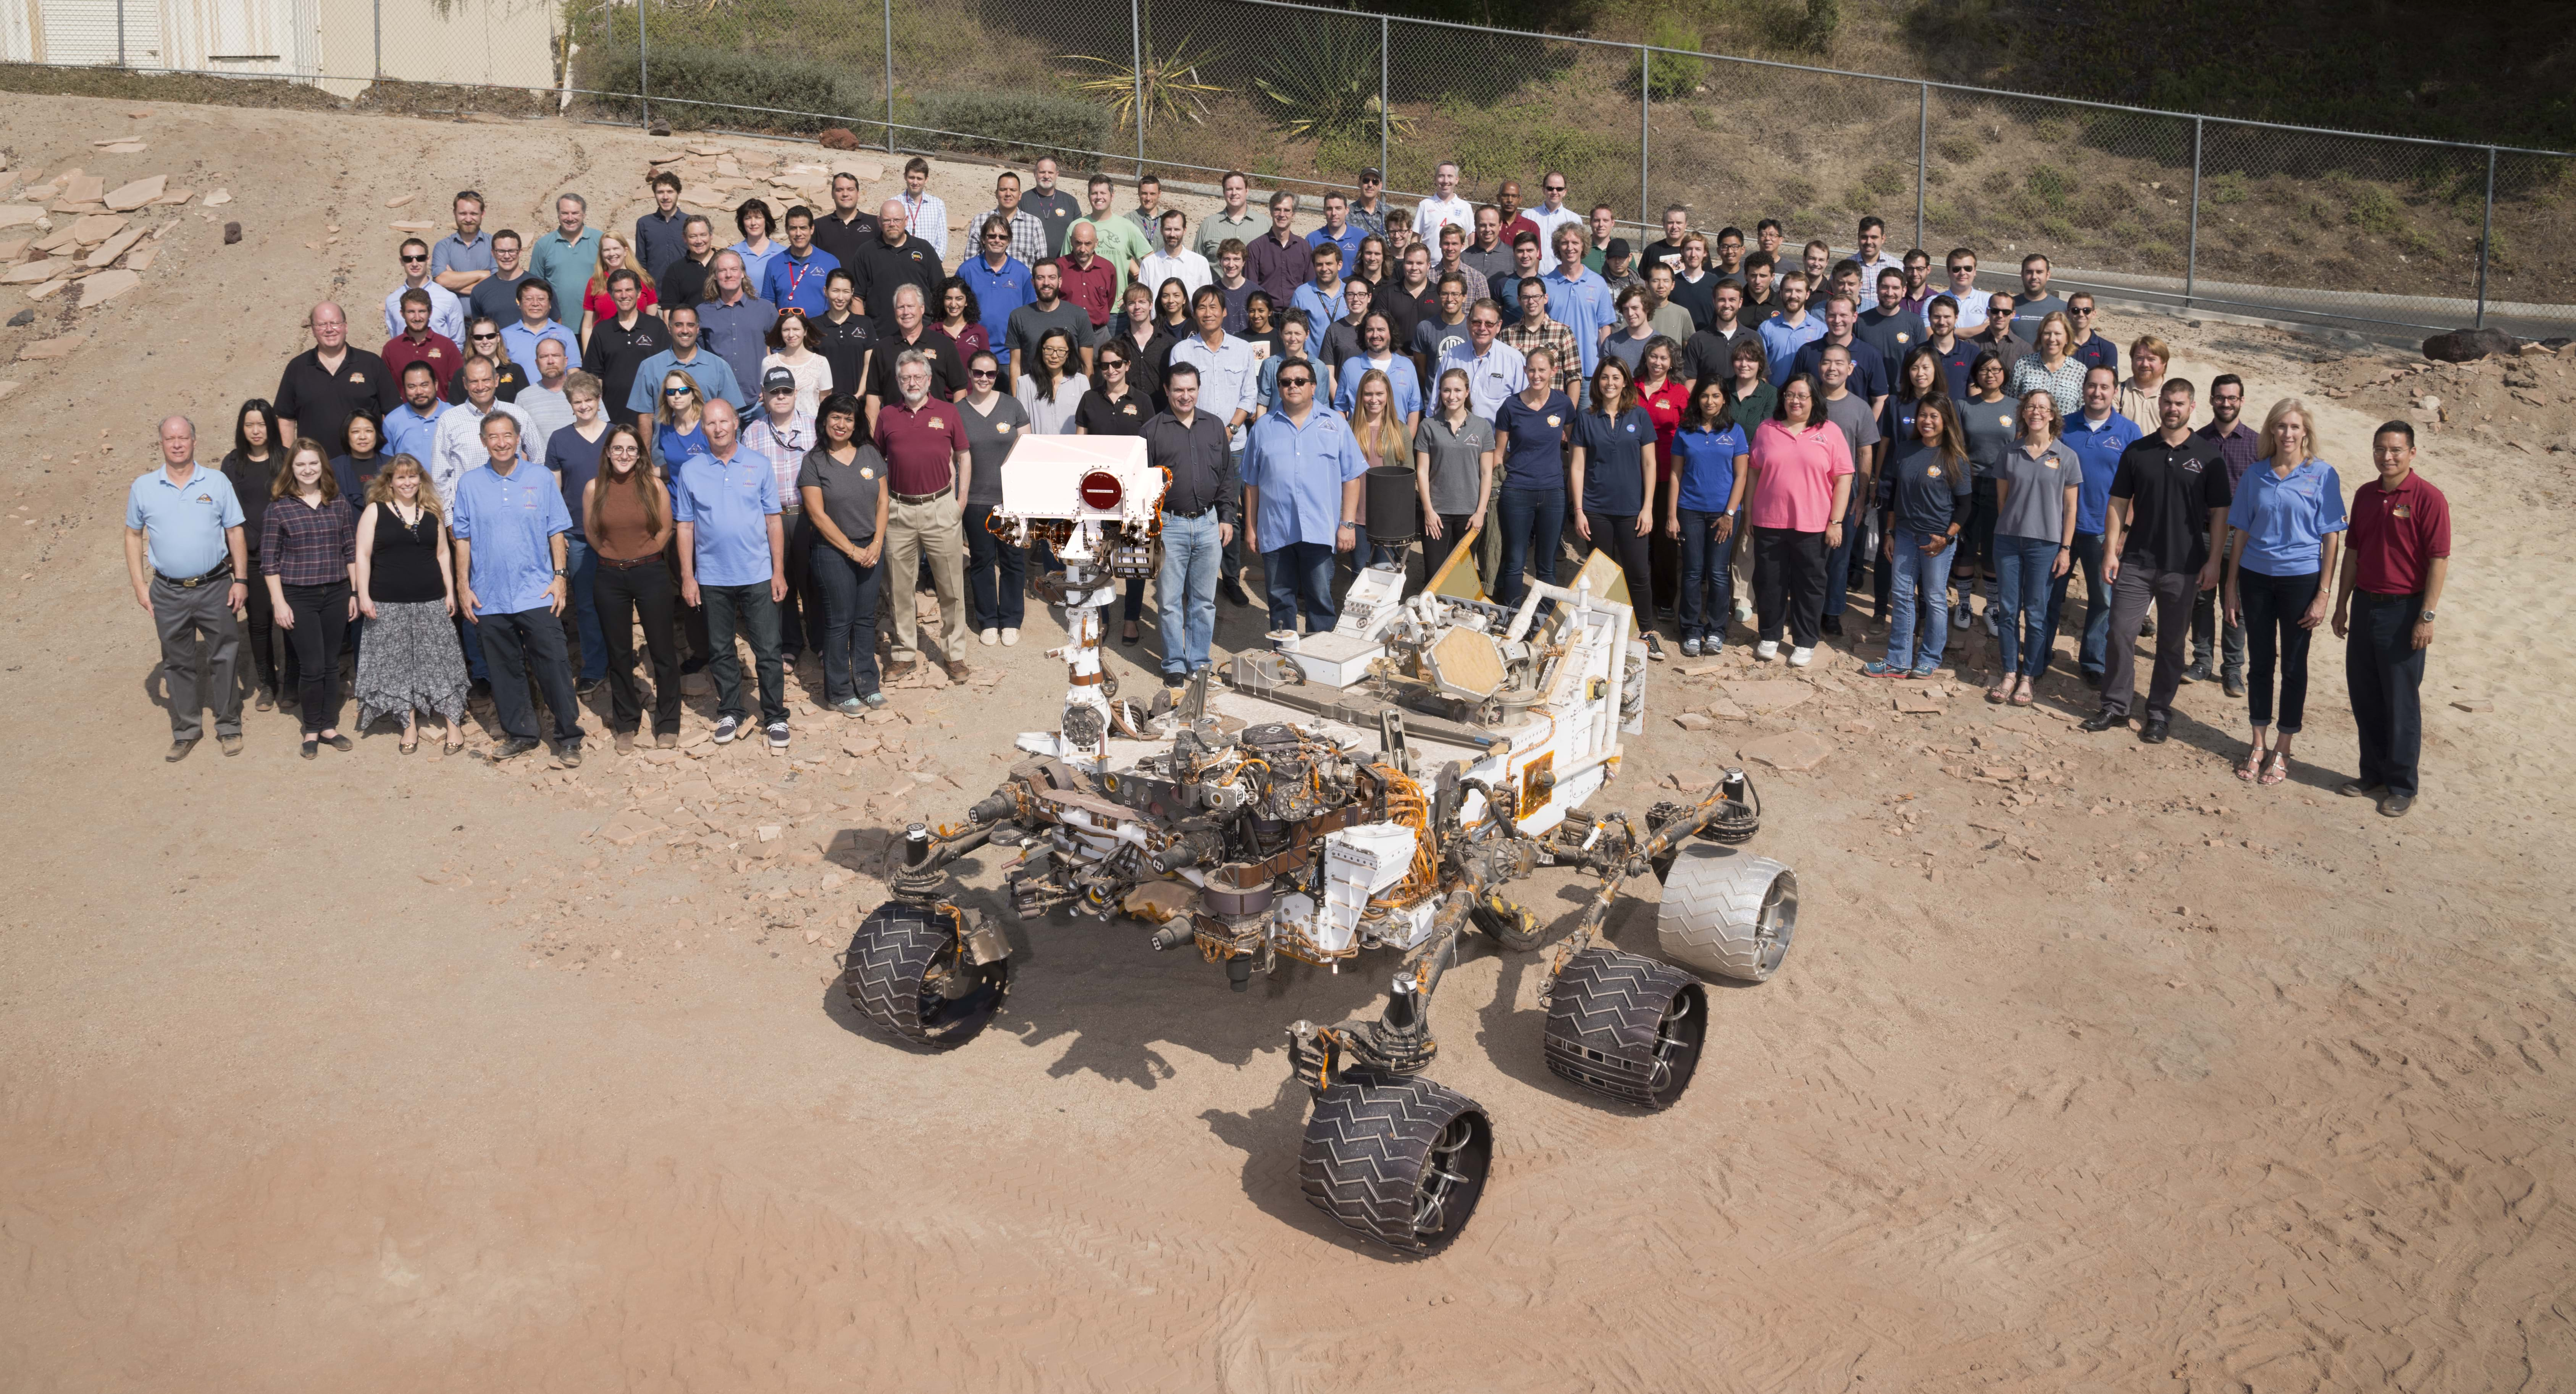 Mars rover model of Curiosity with its team